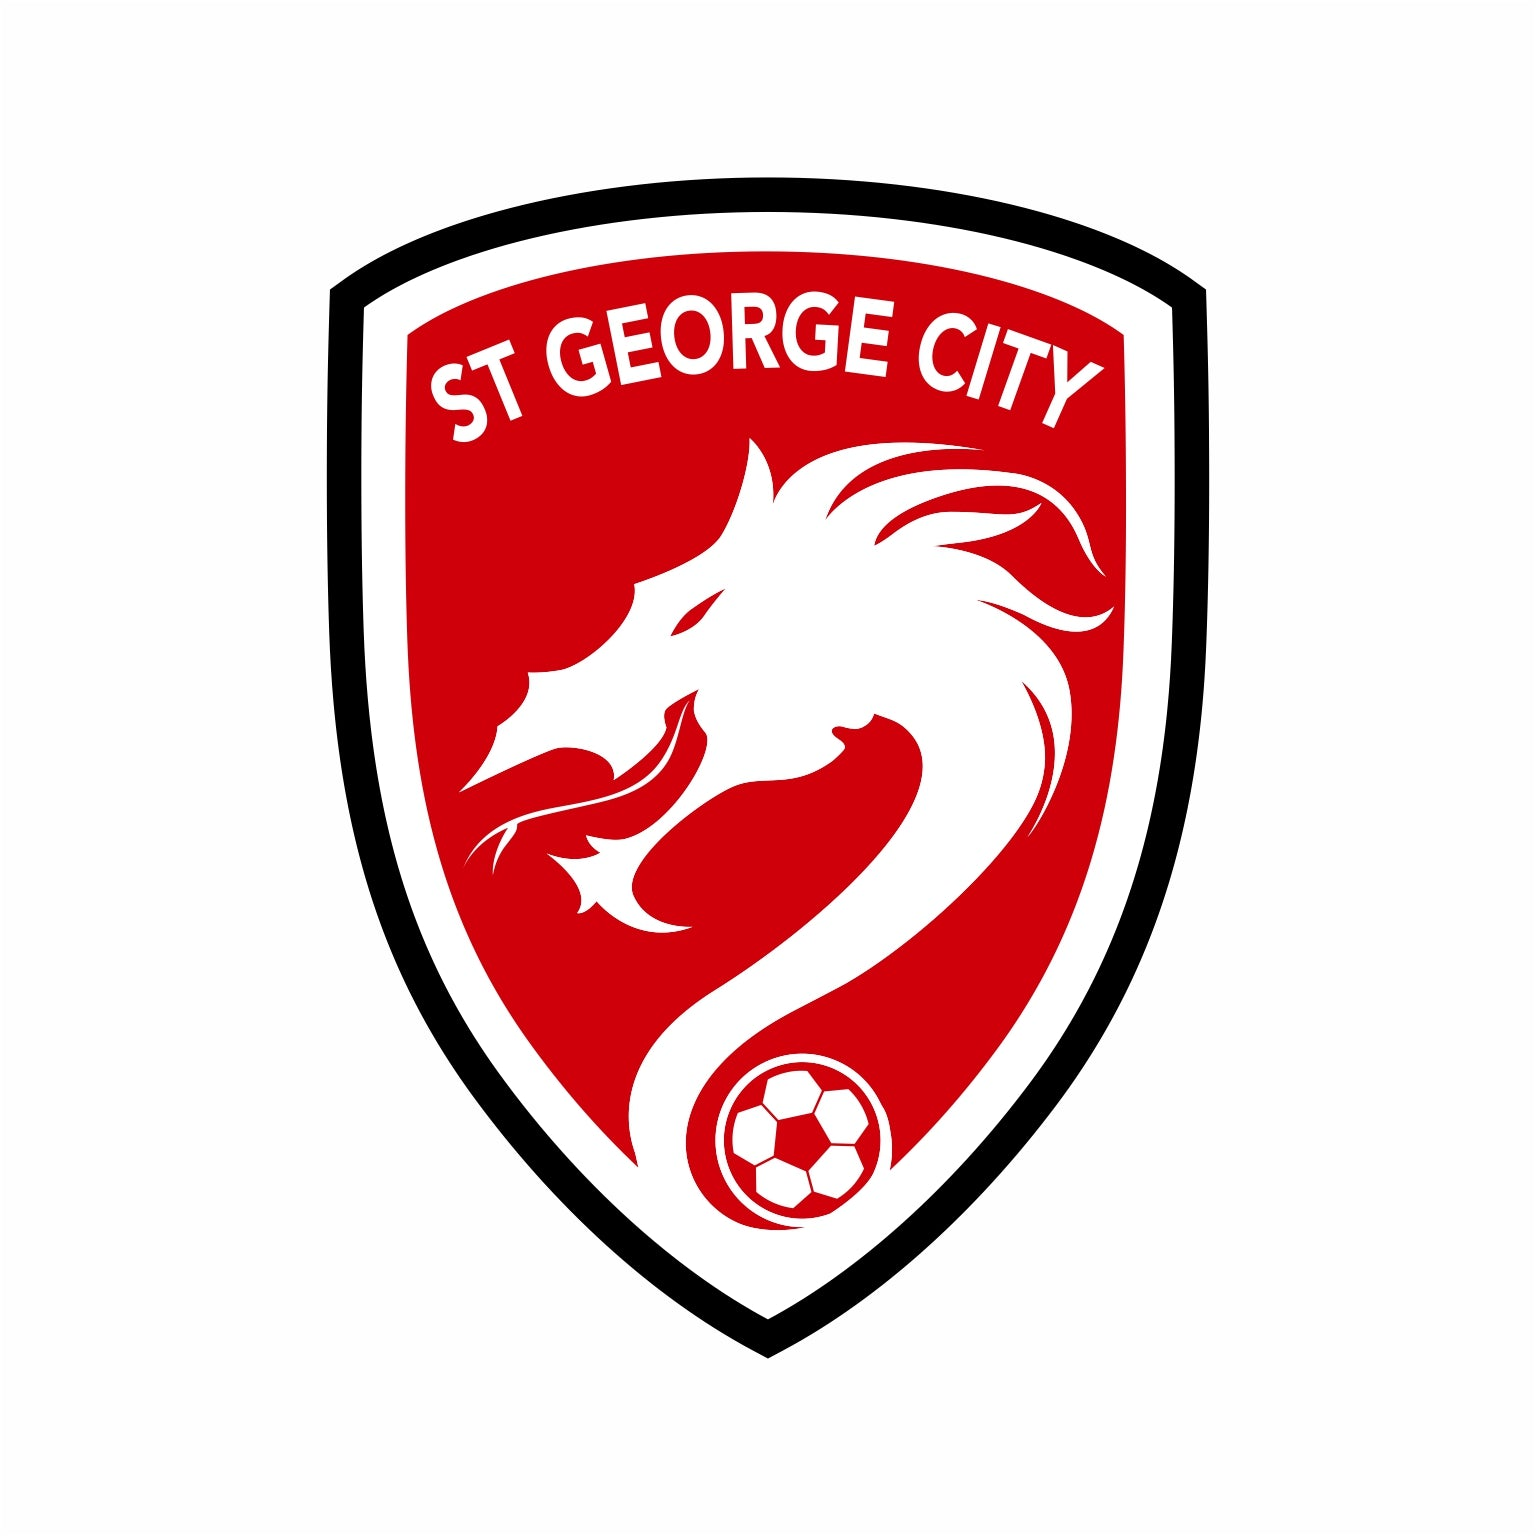 St George City